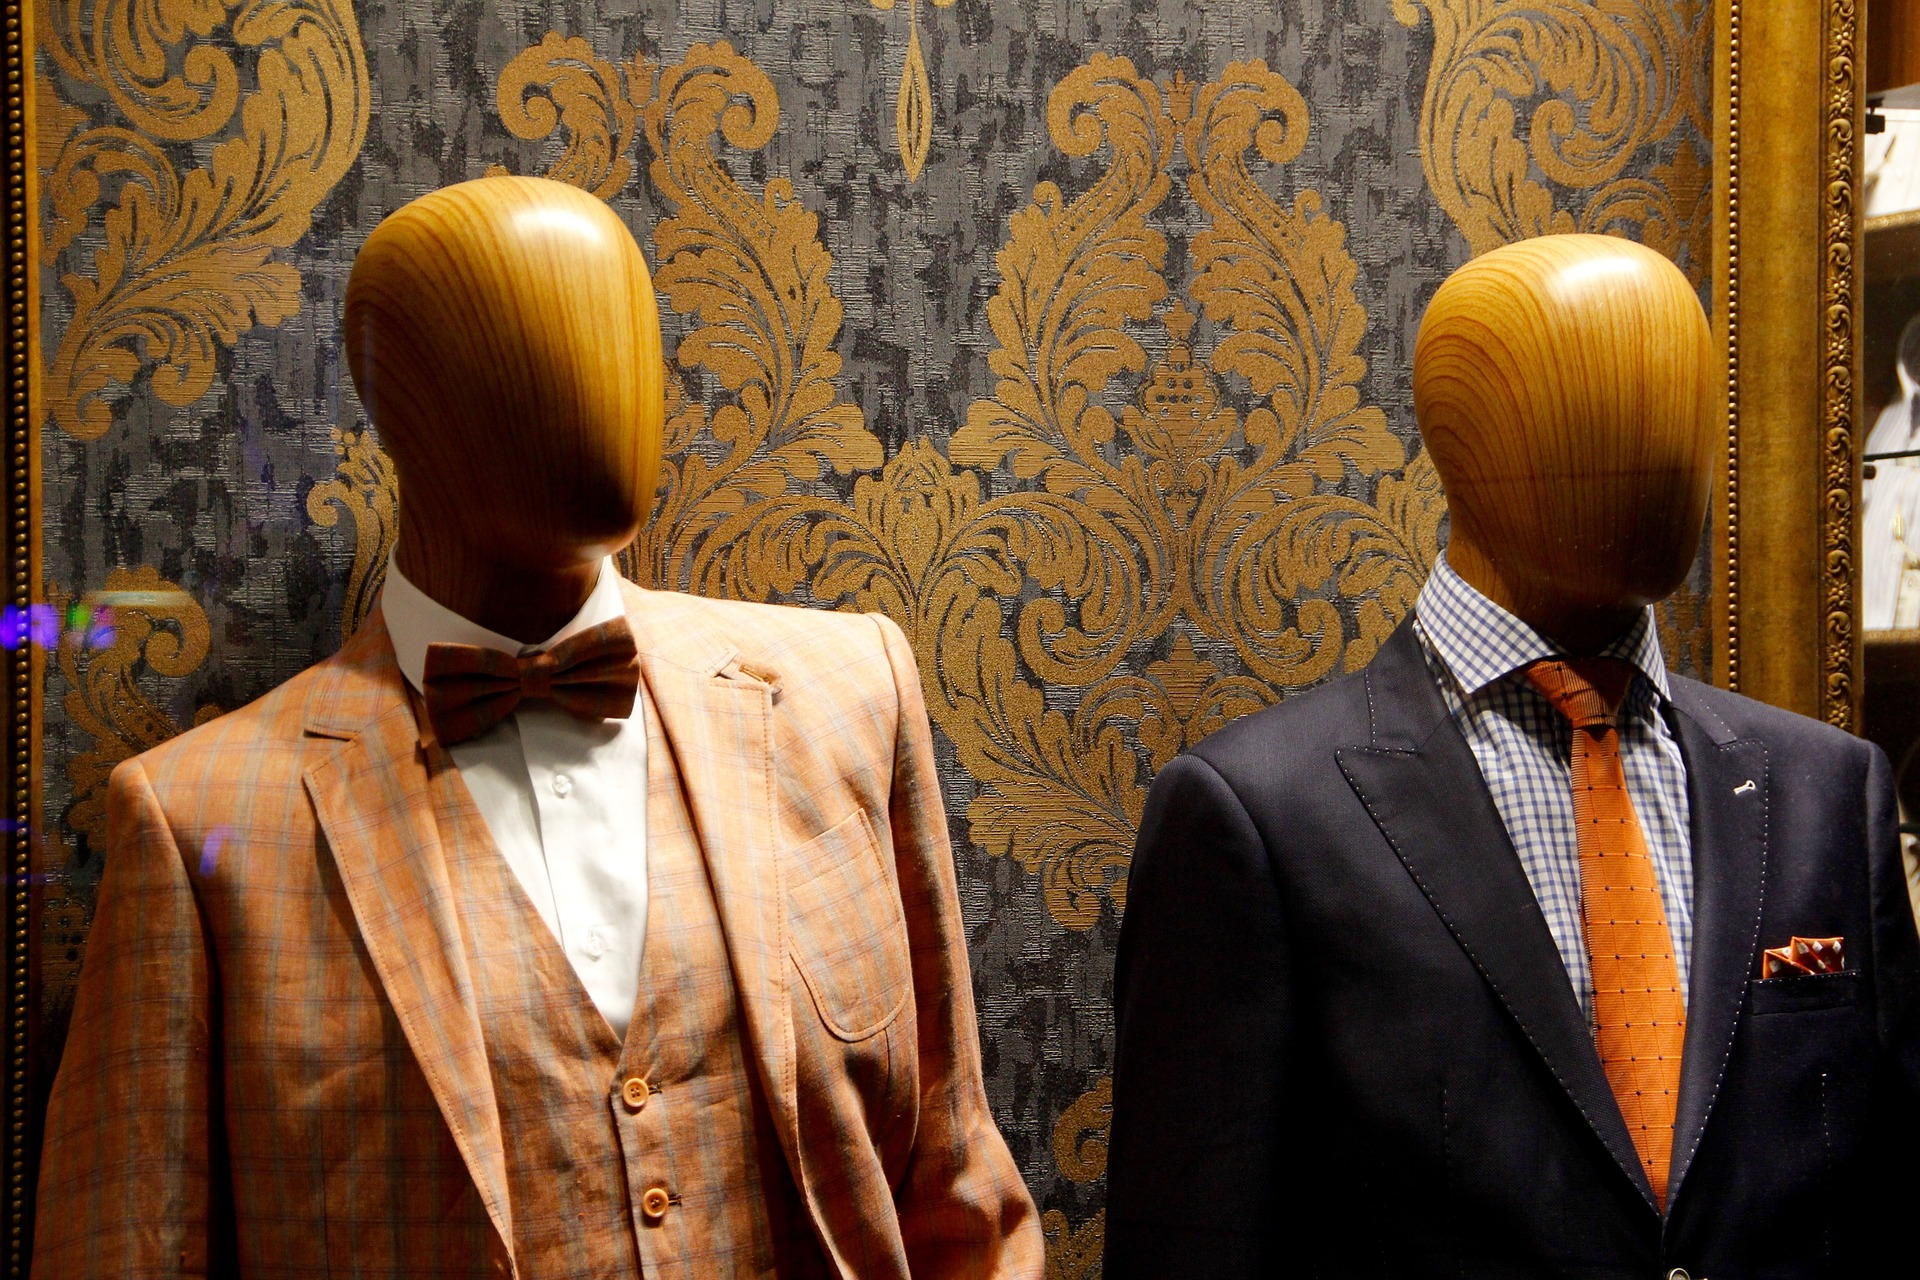 Do Men Hate Shopping. Maynineteen blog post. Image of two traditional wooden male mannequins dressed in elegant and well-tailored suits